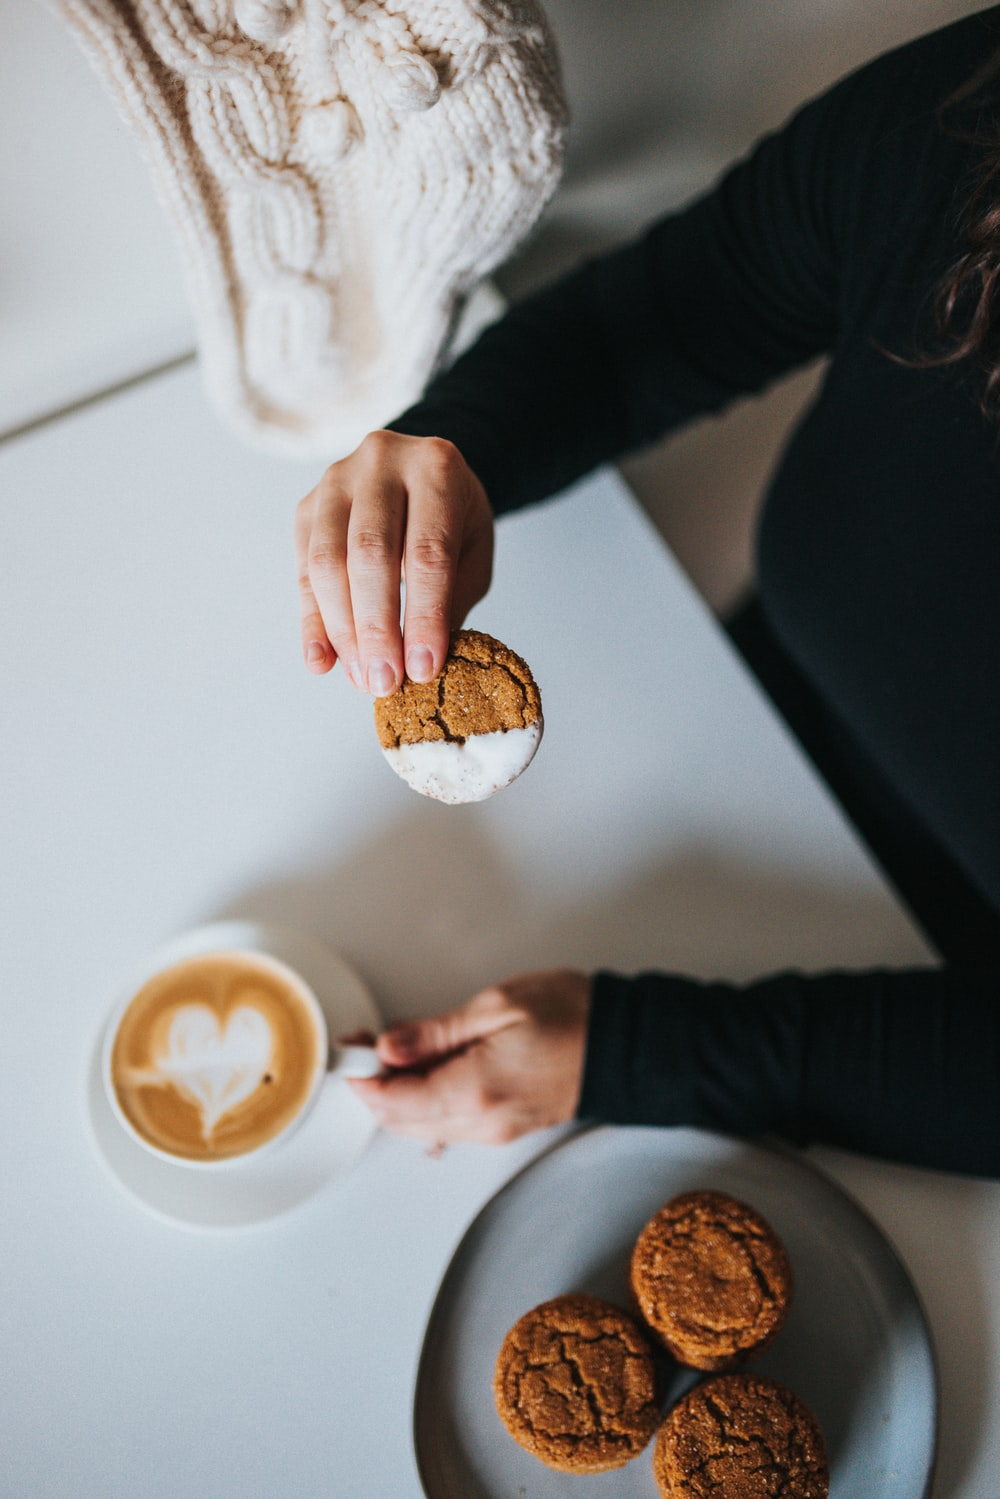 person holding brown bread near white ceramic mug with coffee